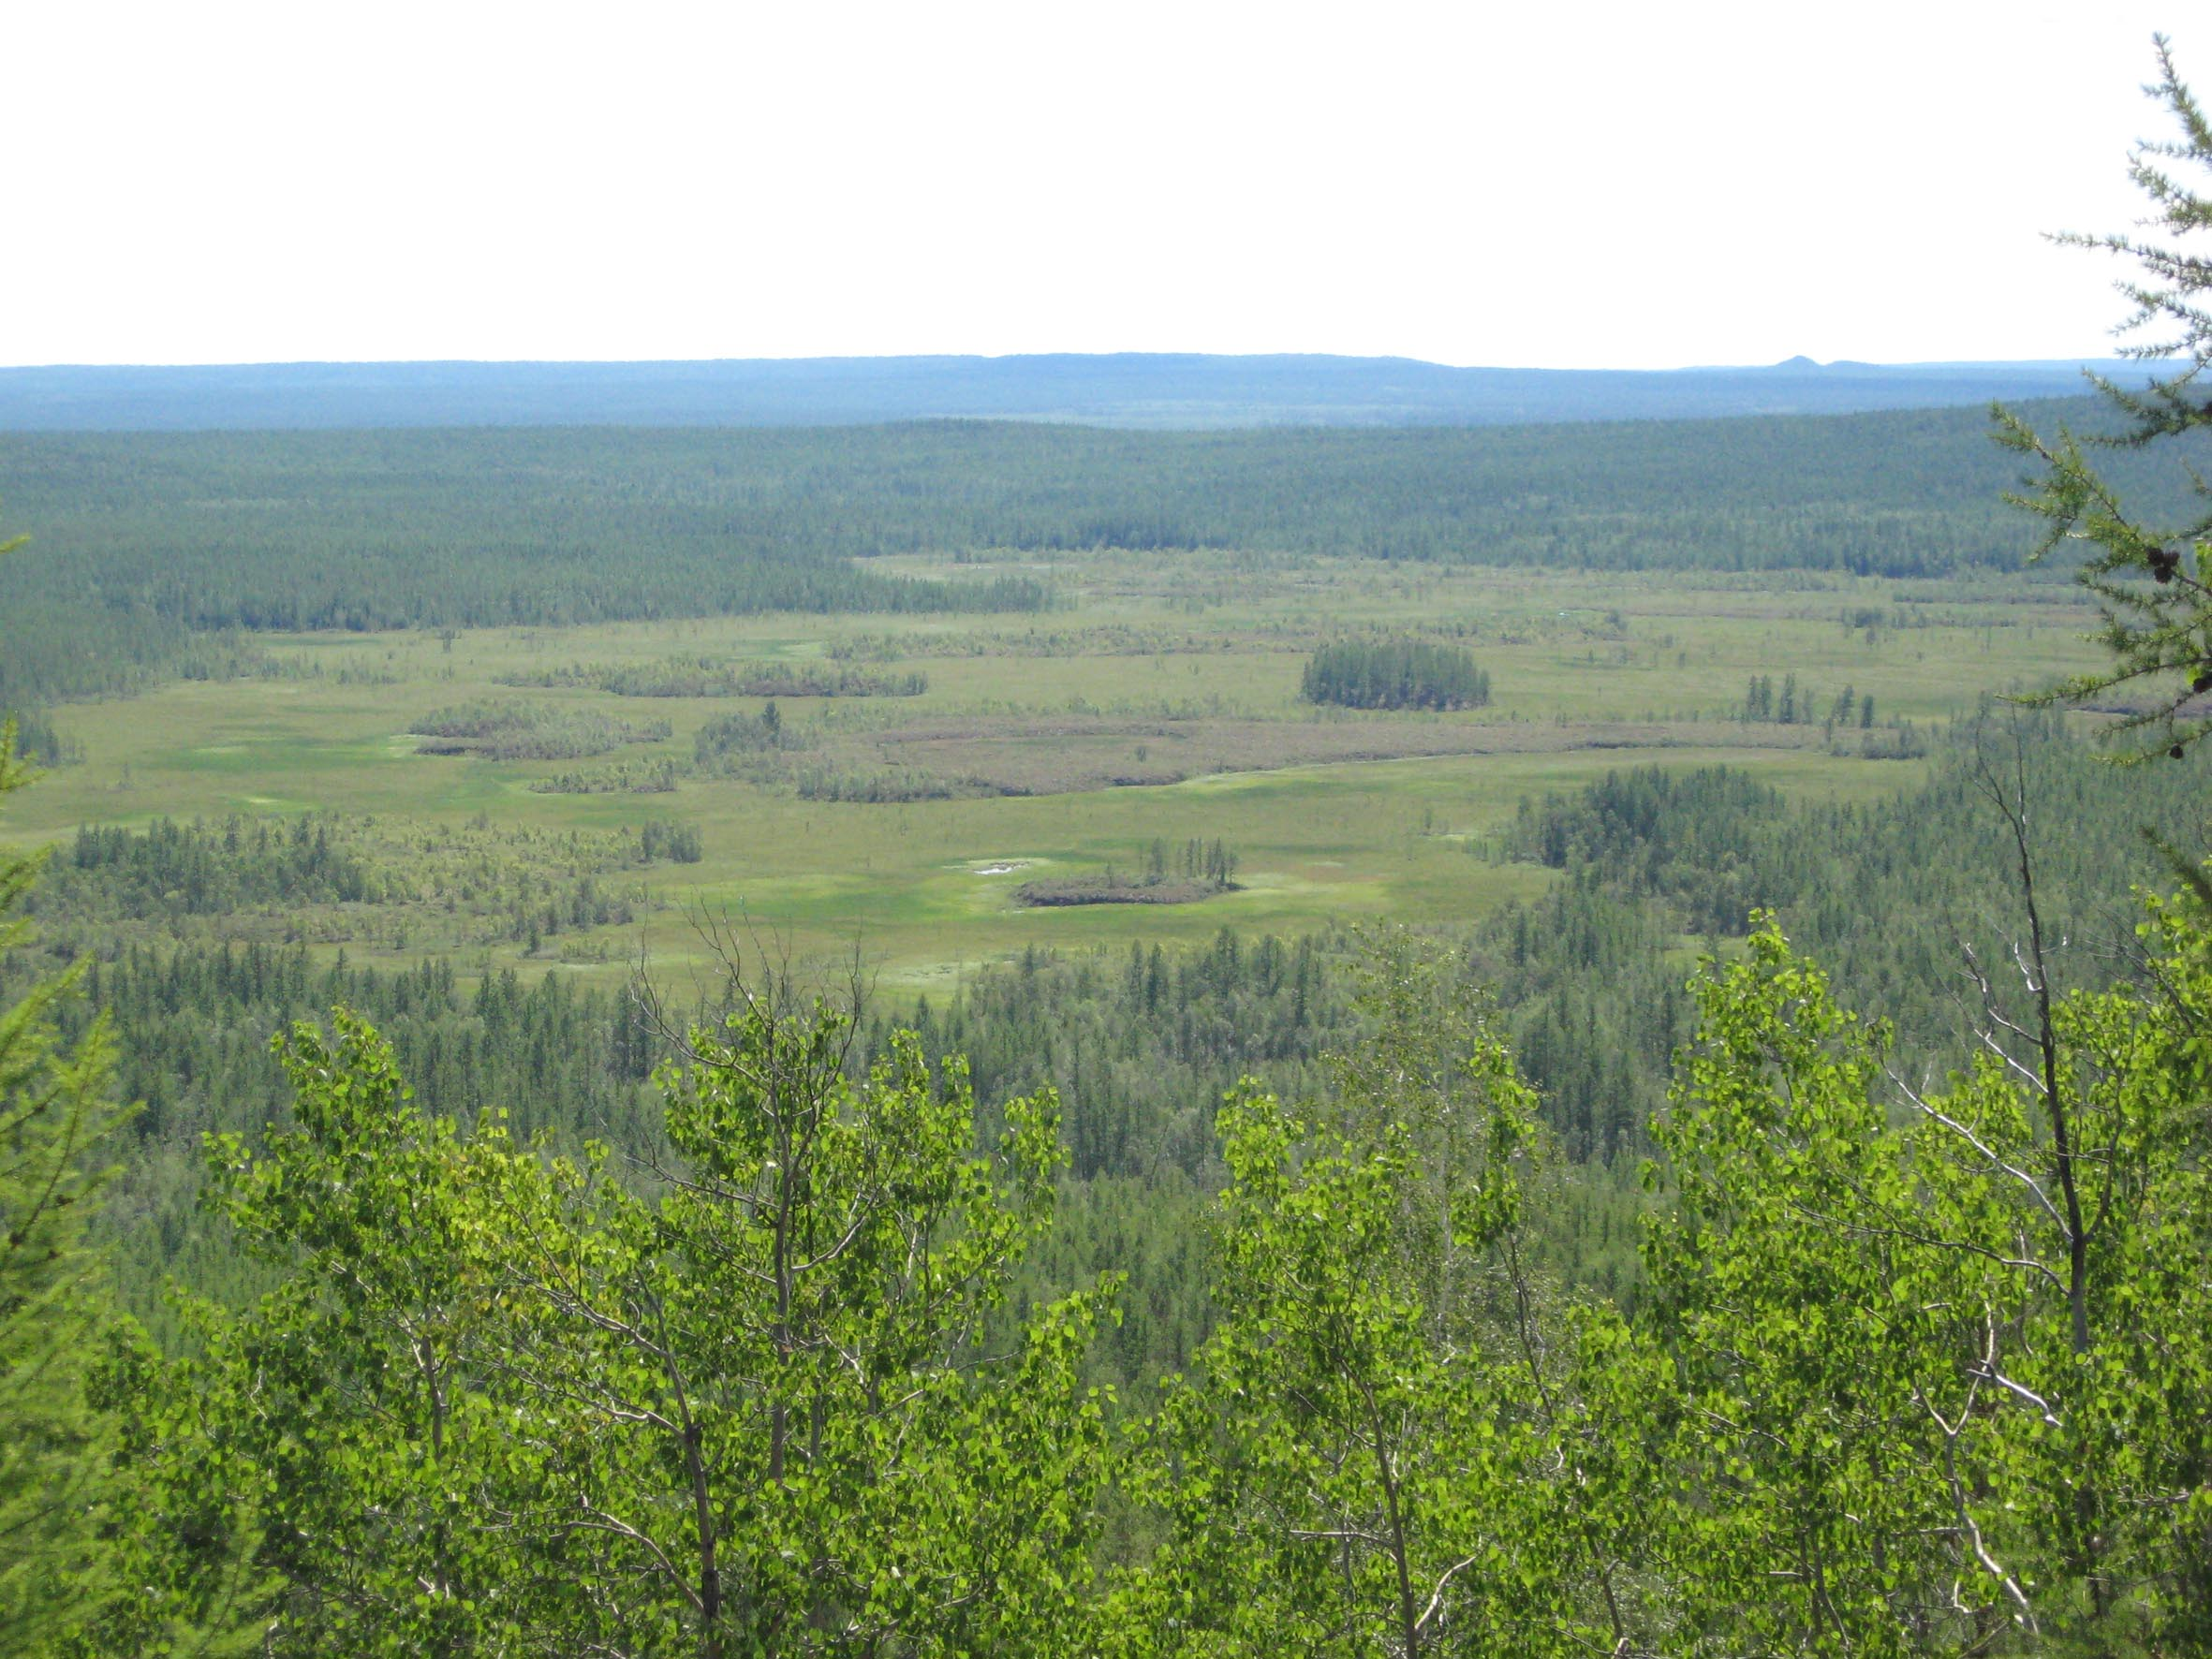 June 2018 The 1908 Tunguska Event And The Threats Of